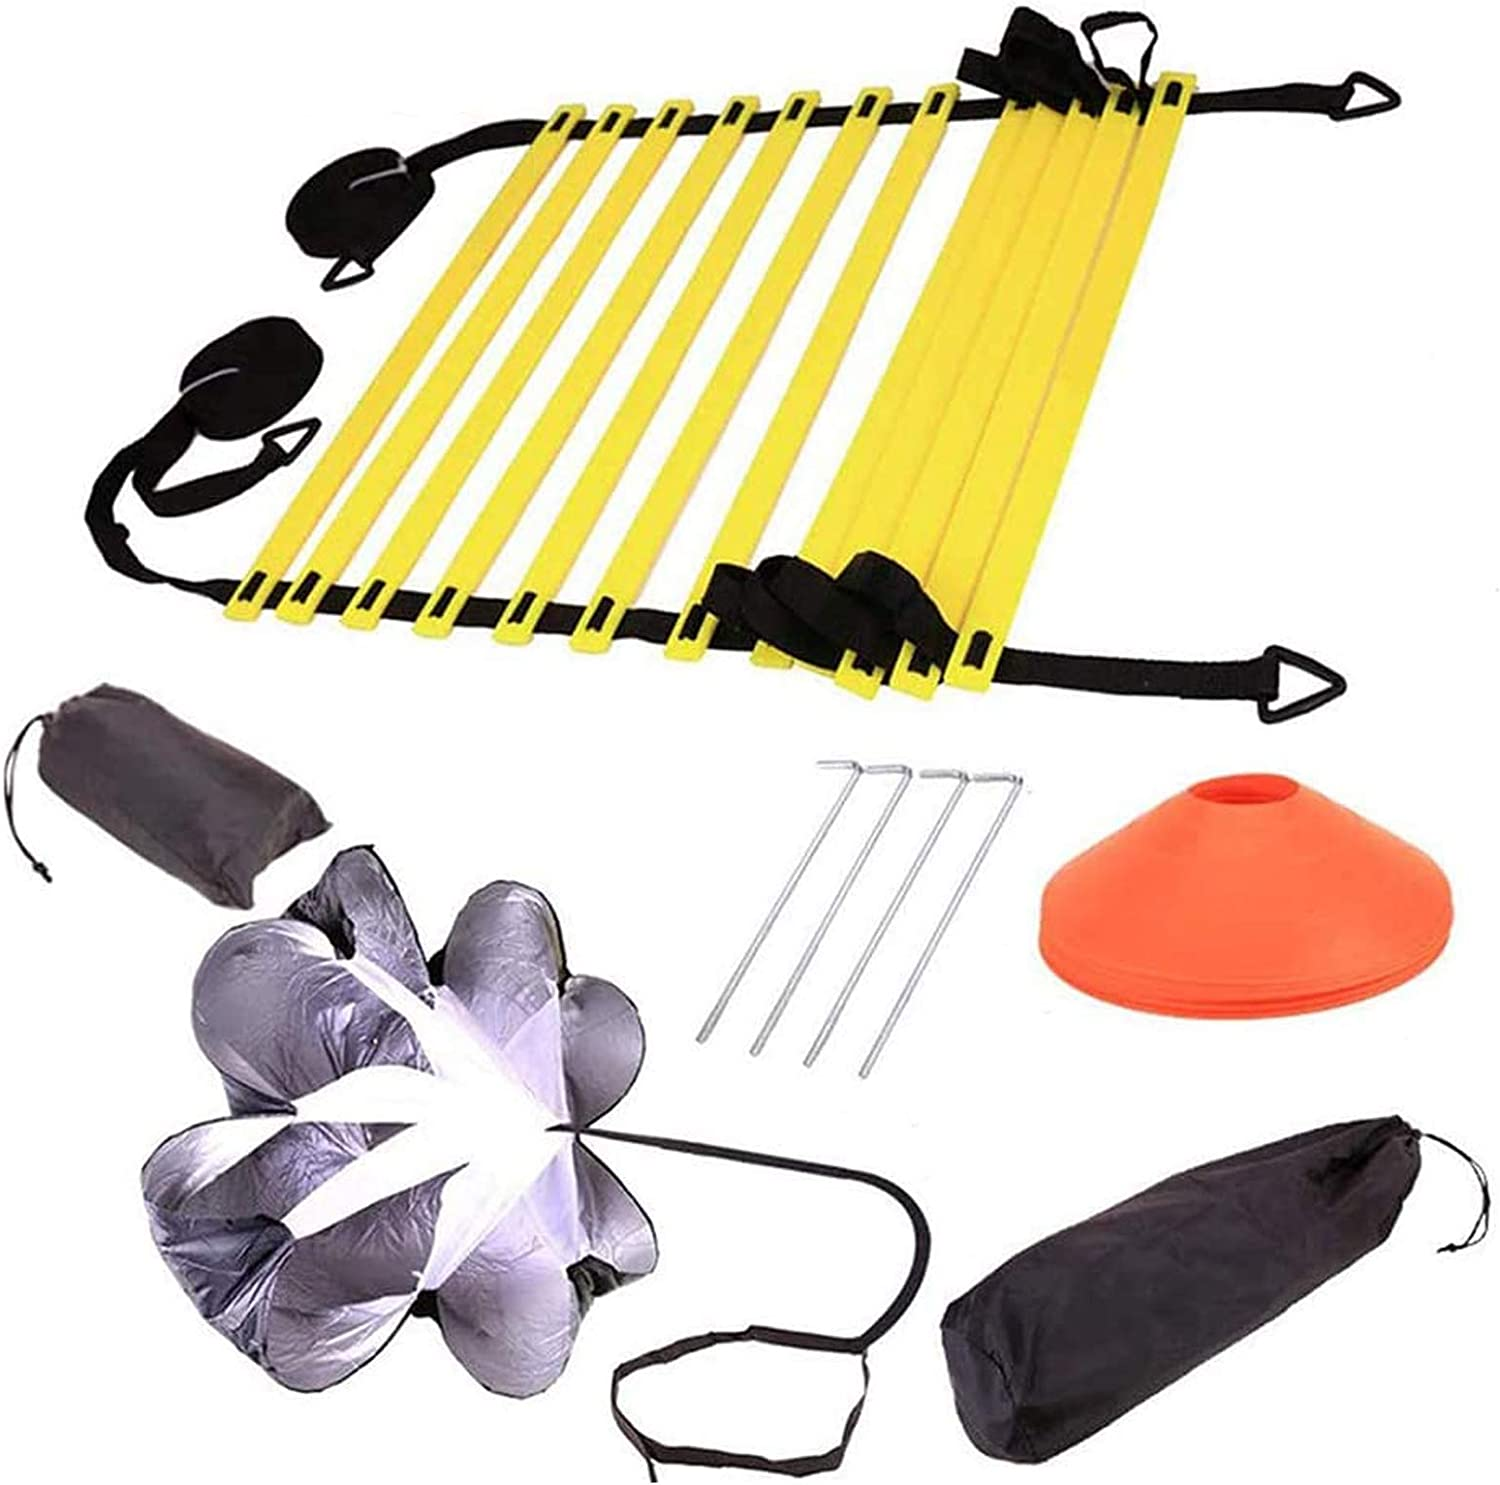 Folamer Speed Agility Training Equipment Set — Includes Agility Ladder with Carry Bag, 5 Disc Cones, Resistance Parachute, 4 Ste